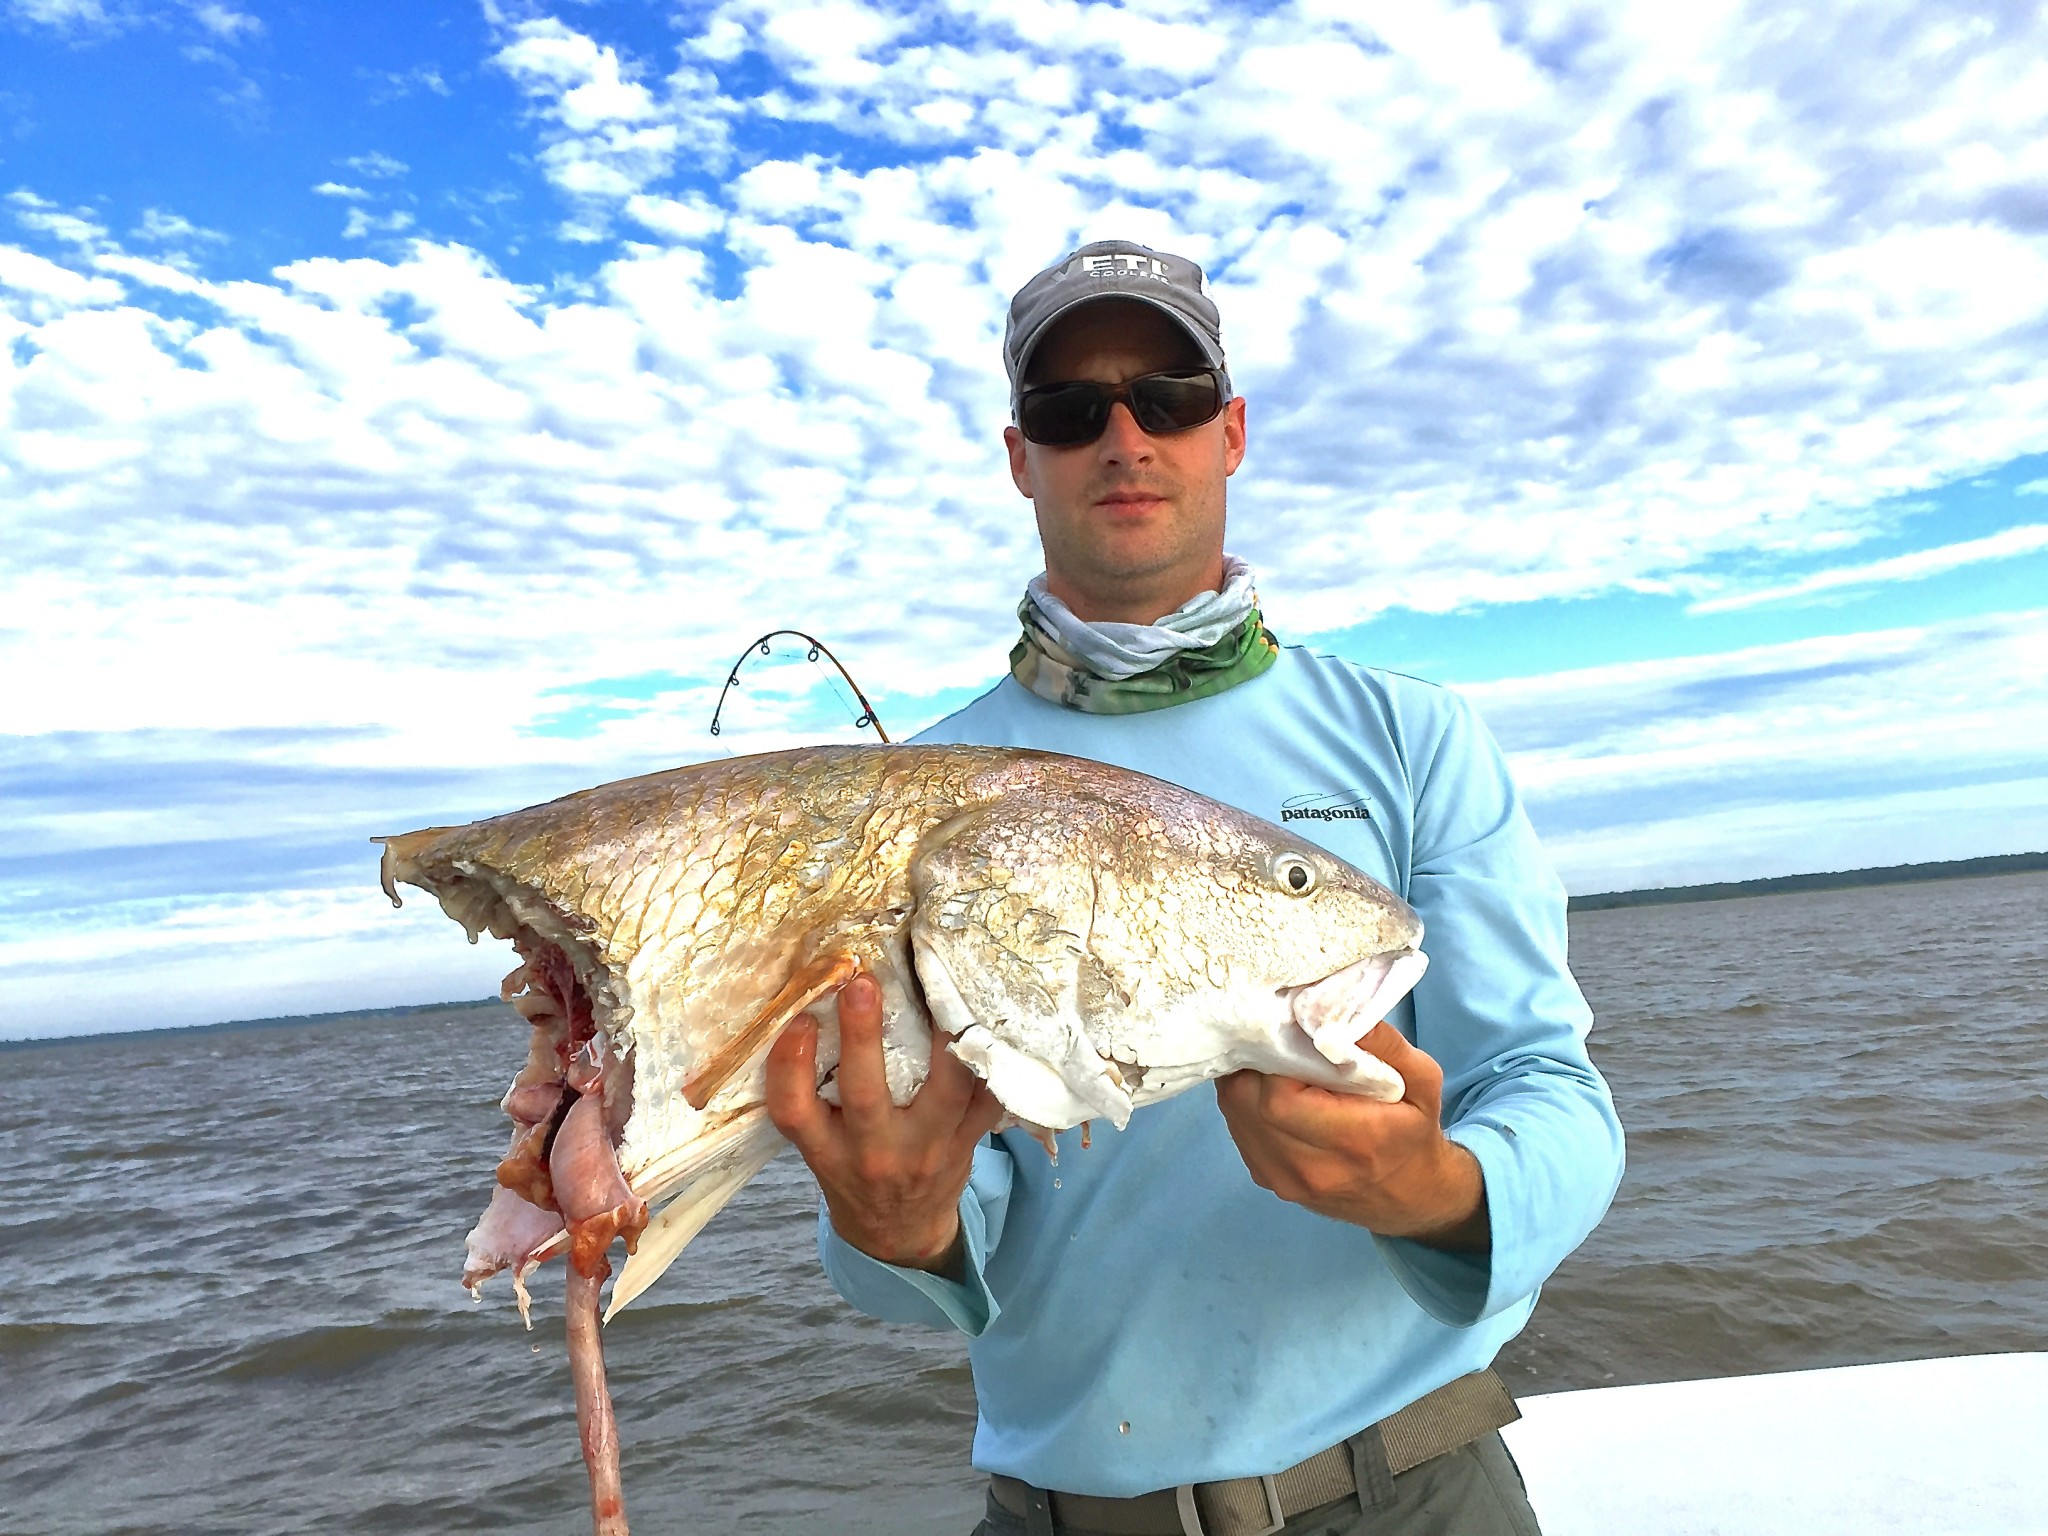 Pawleys island fishing report living water guide services for Carolina fishing tv